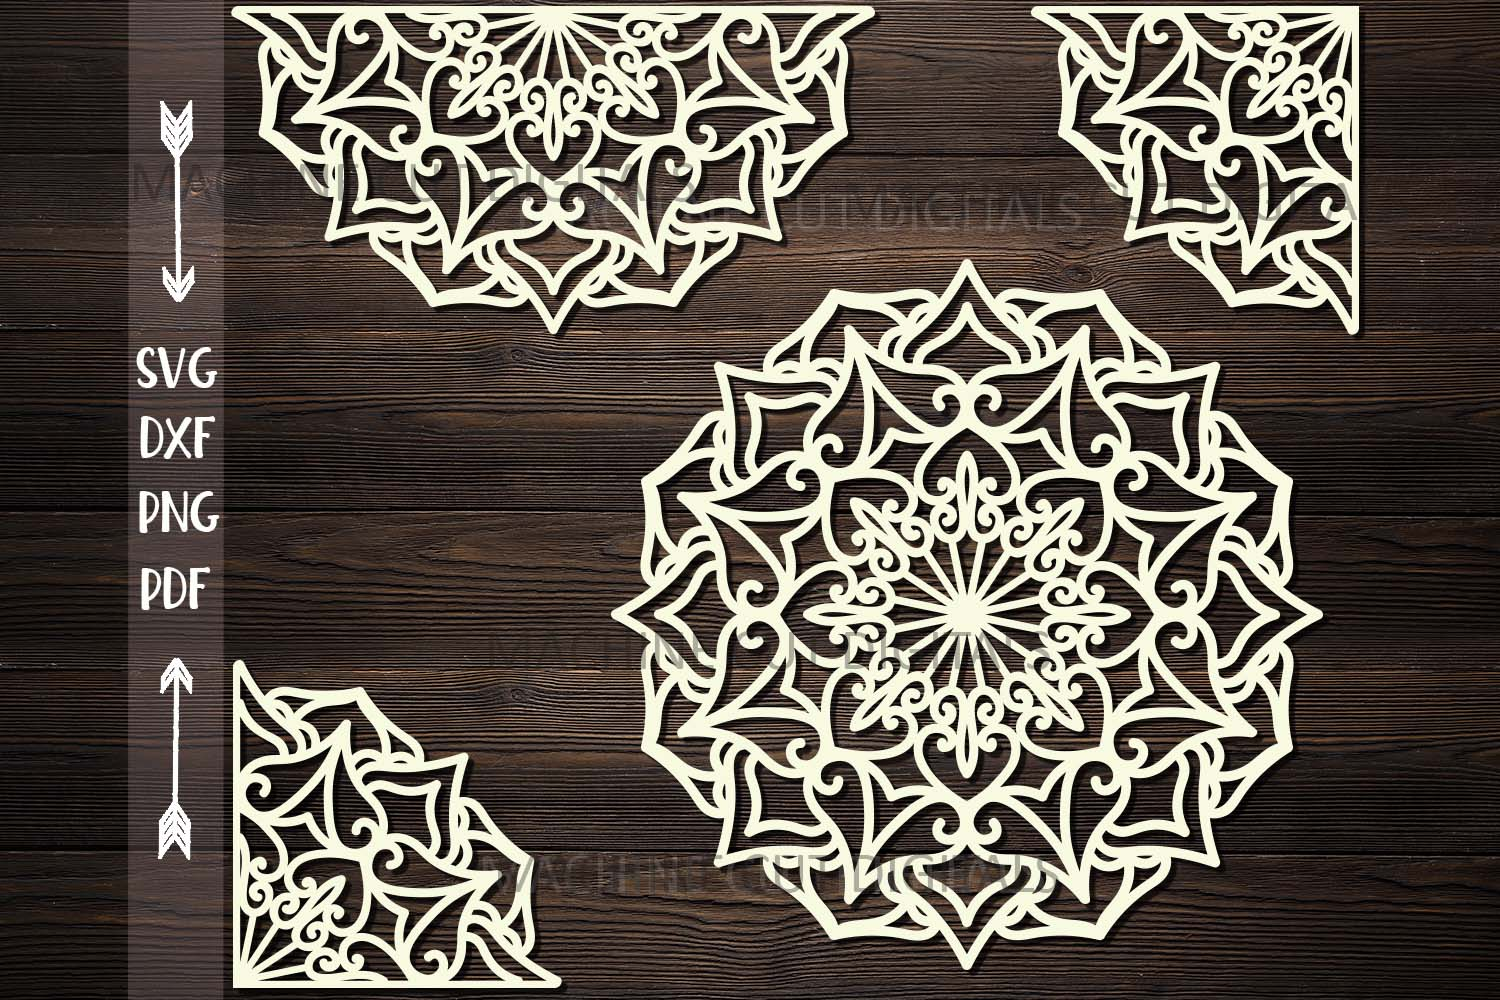 Mandala set corner half border plotter cut svg dxf templates example image 1